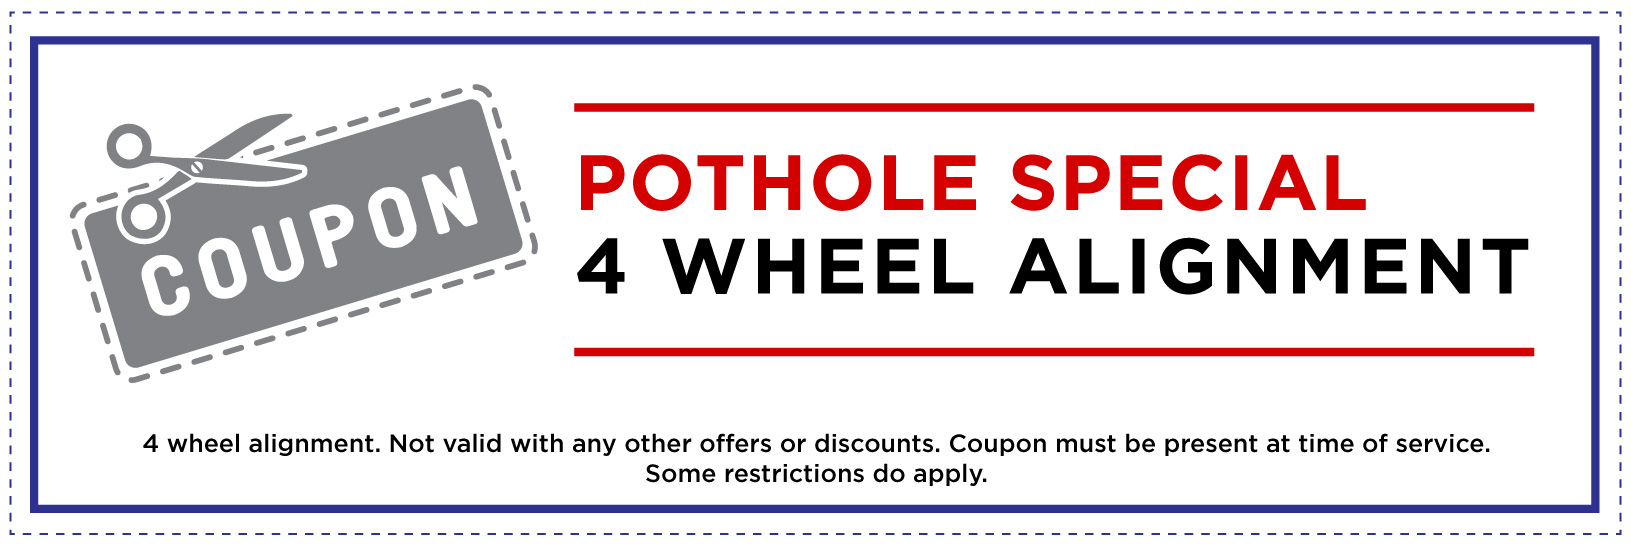 4 Wheel Alignment Coupon for Website